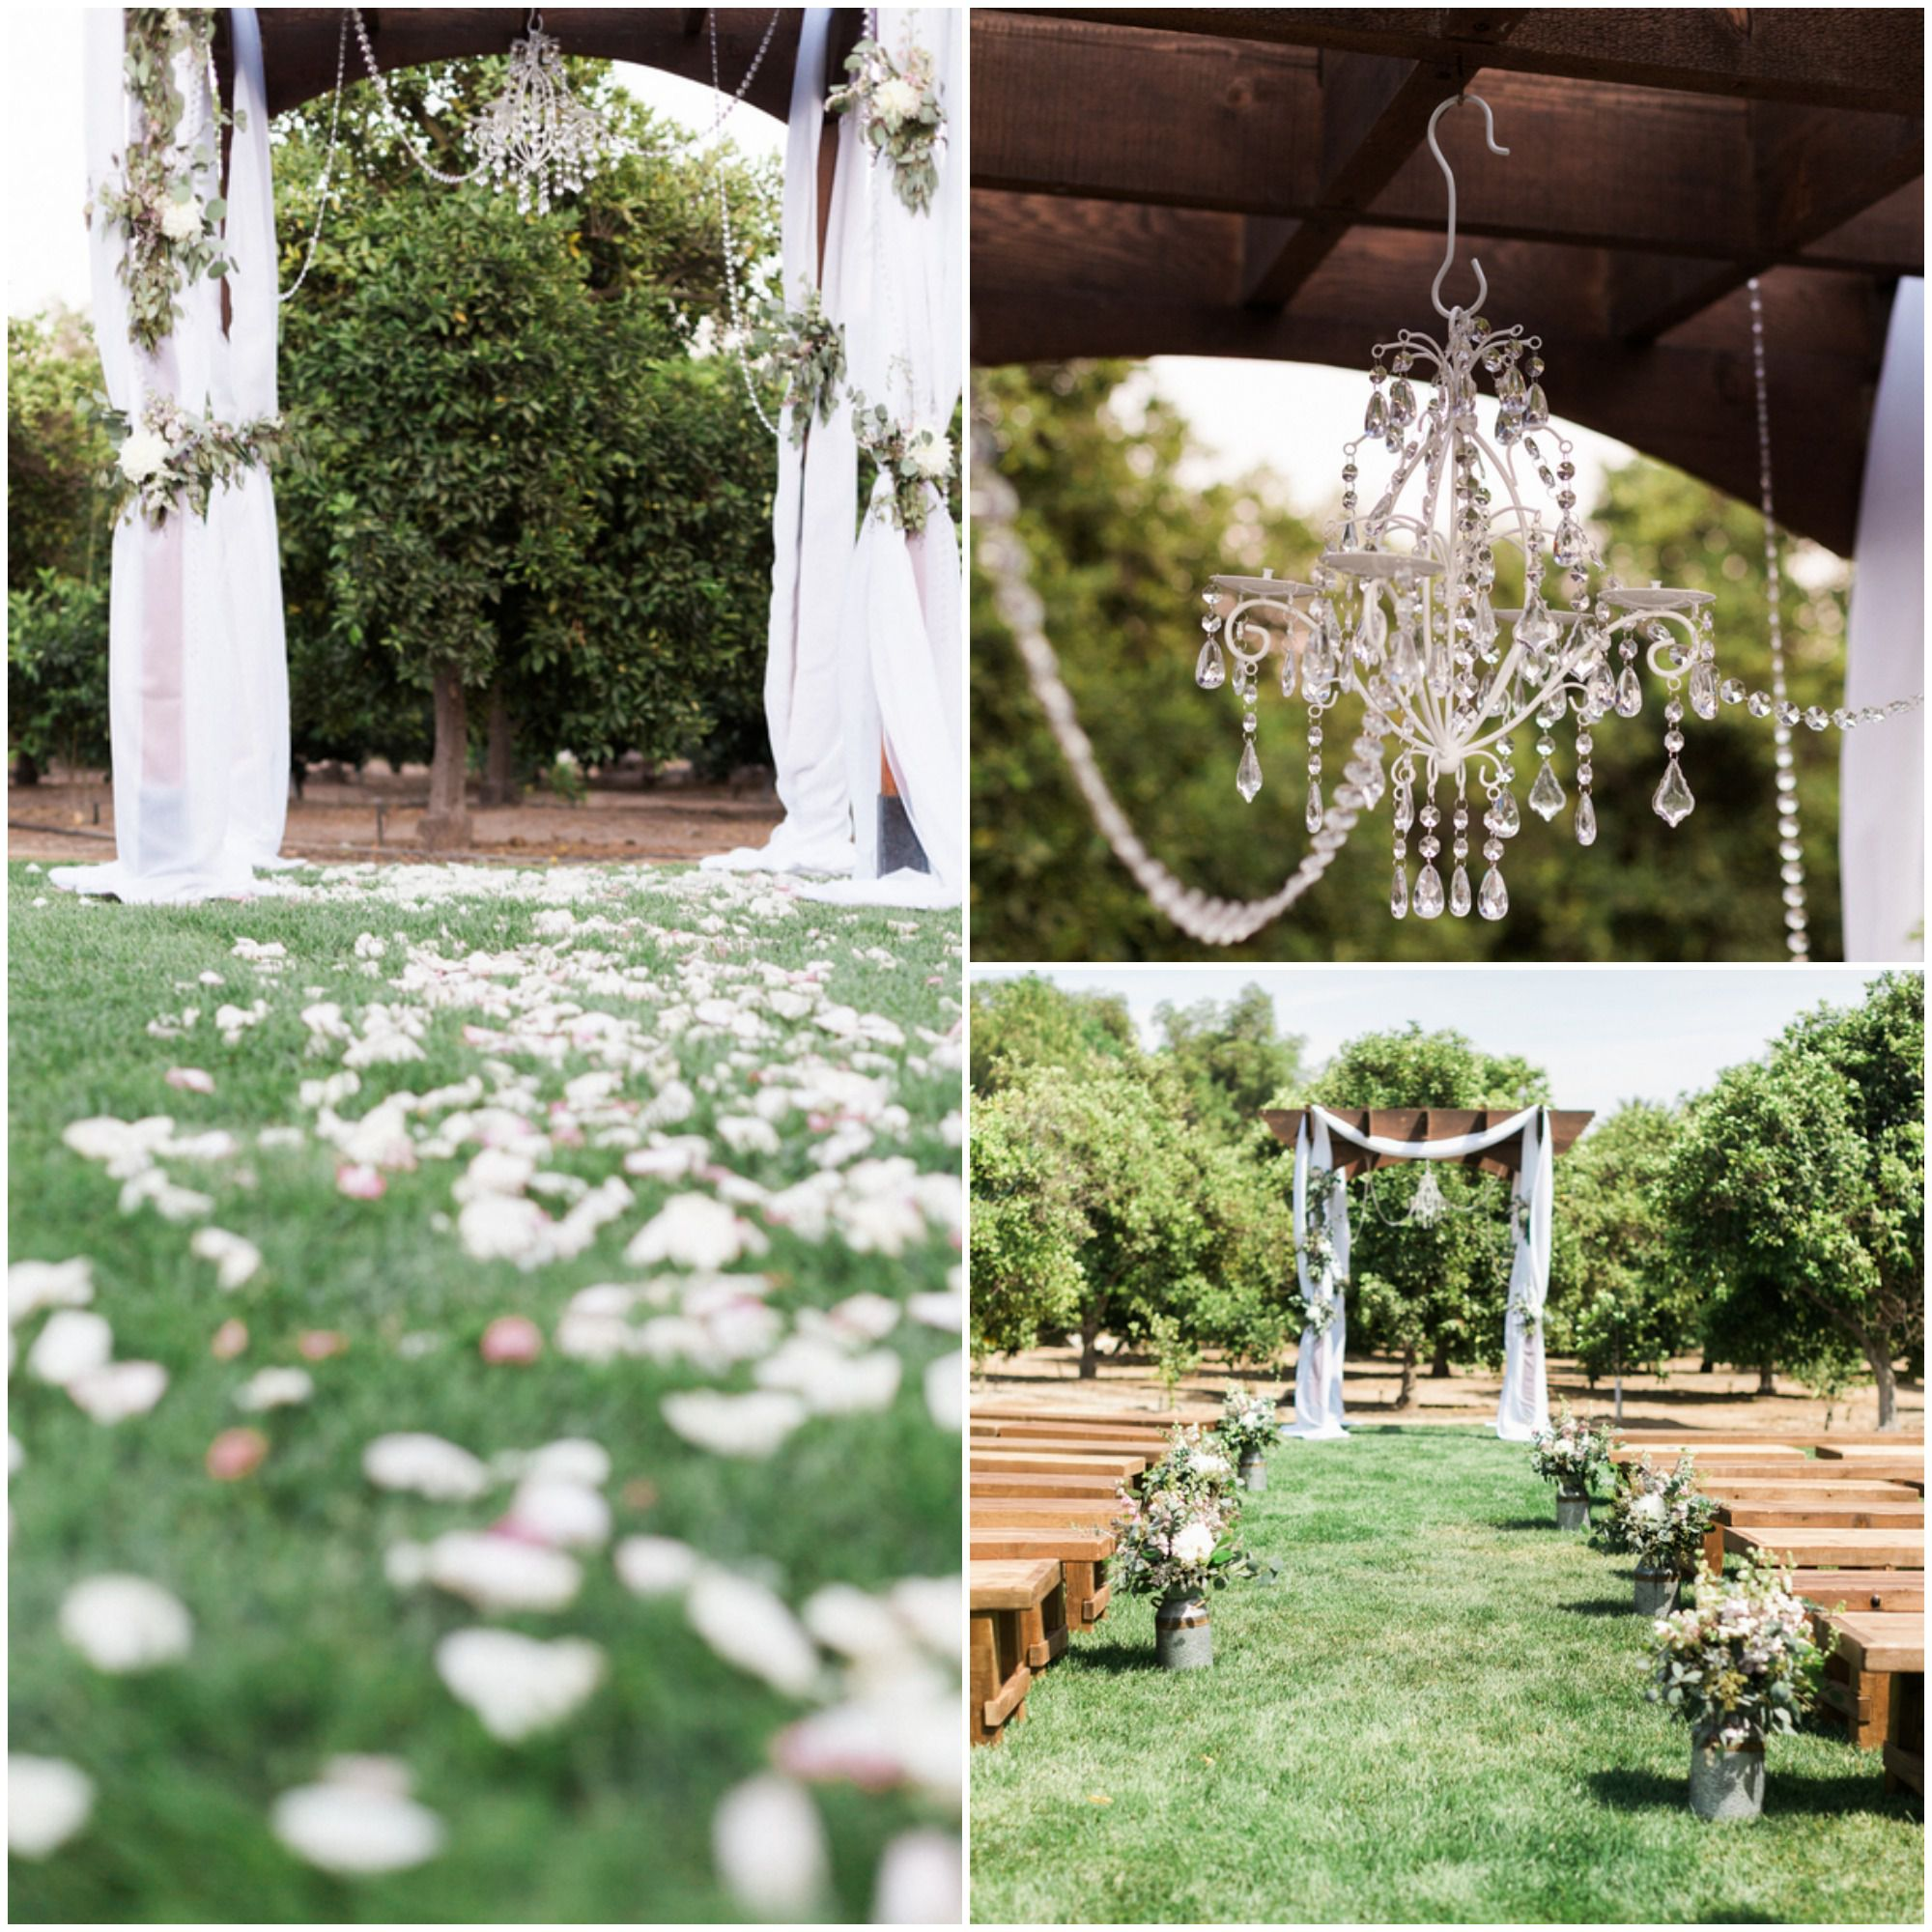 Outdoor Wedding Ceremony: Country Shabby Chic Wedding